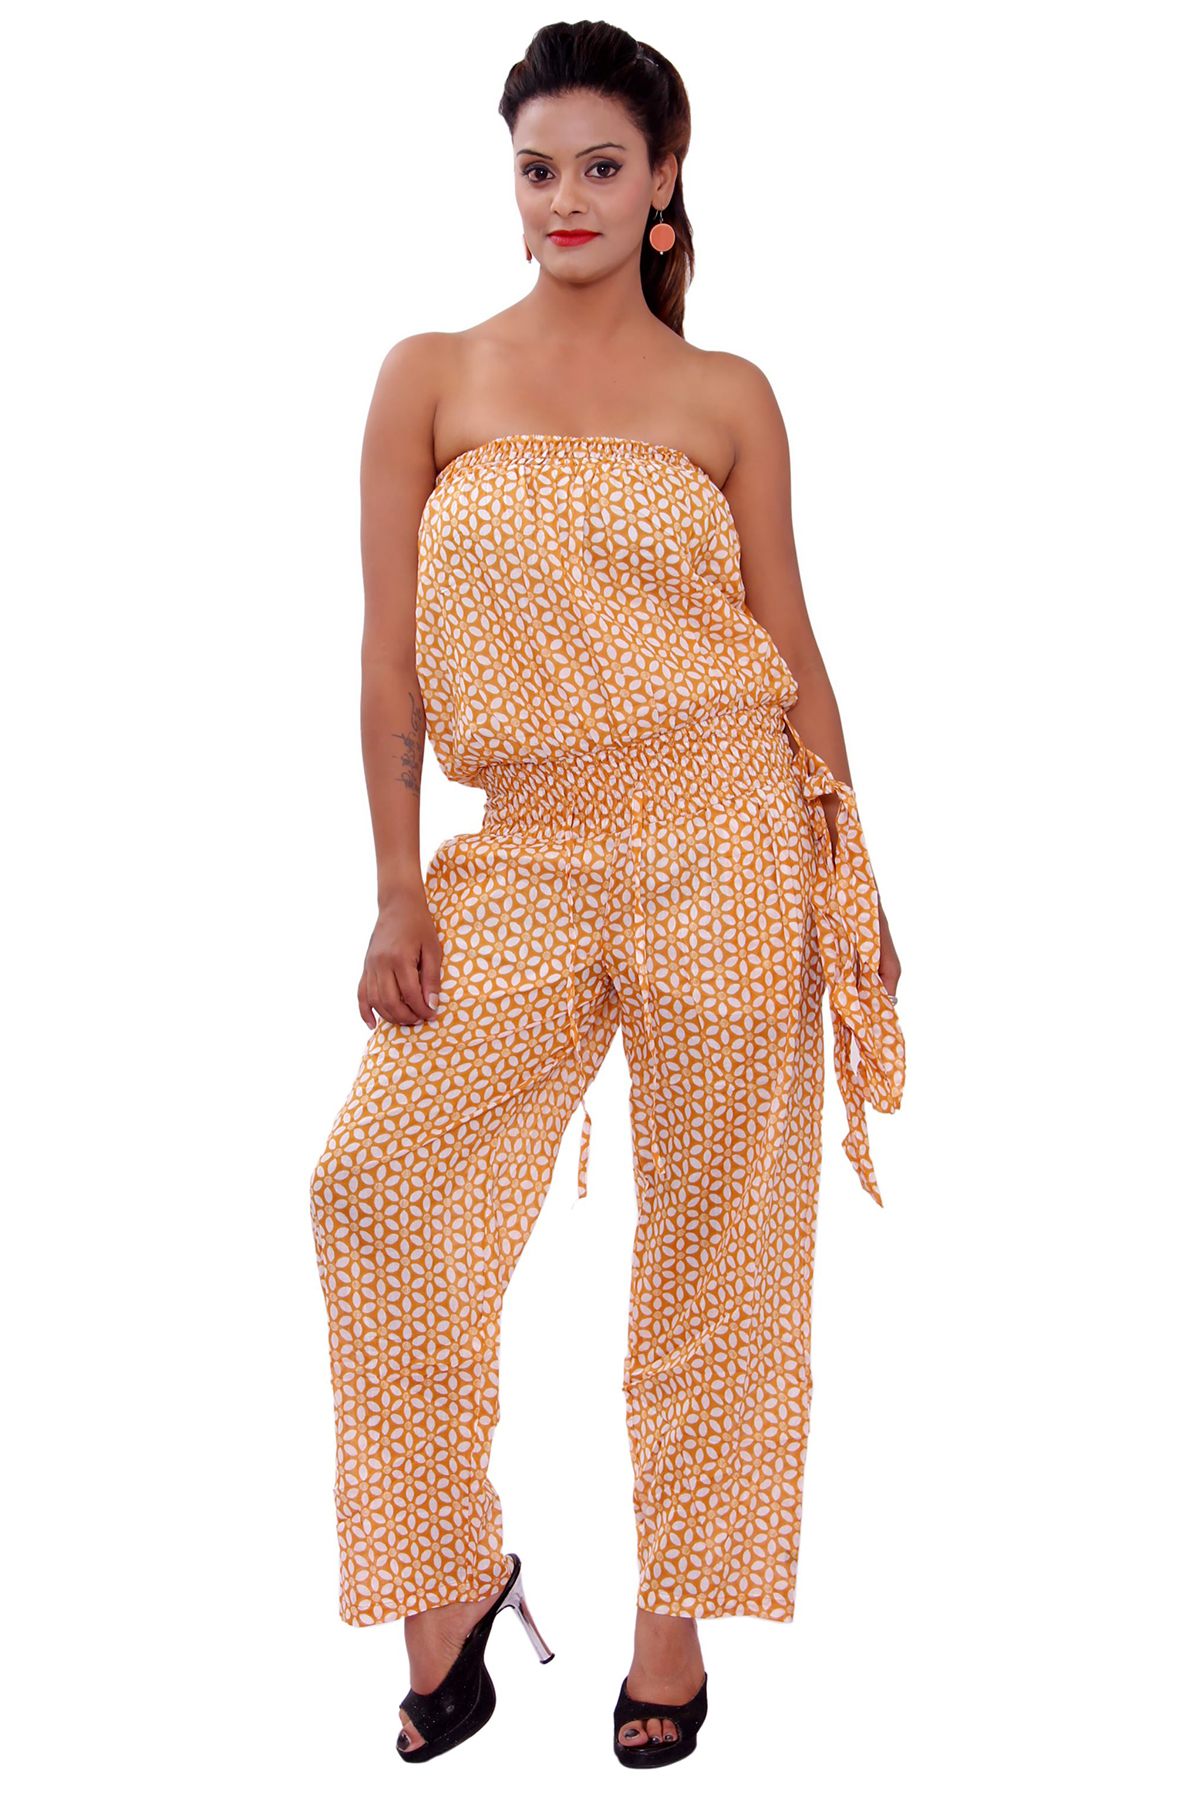 Ethnic Home Decor Online Shopping India Online Shopping India Online Fashion For Womens Jumpsuits